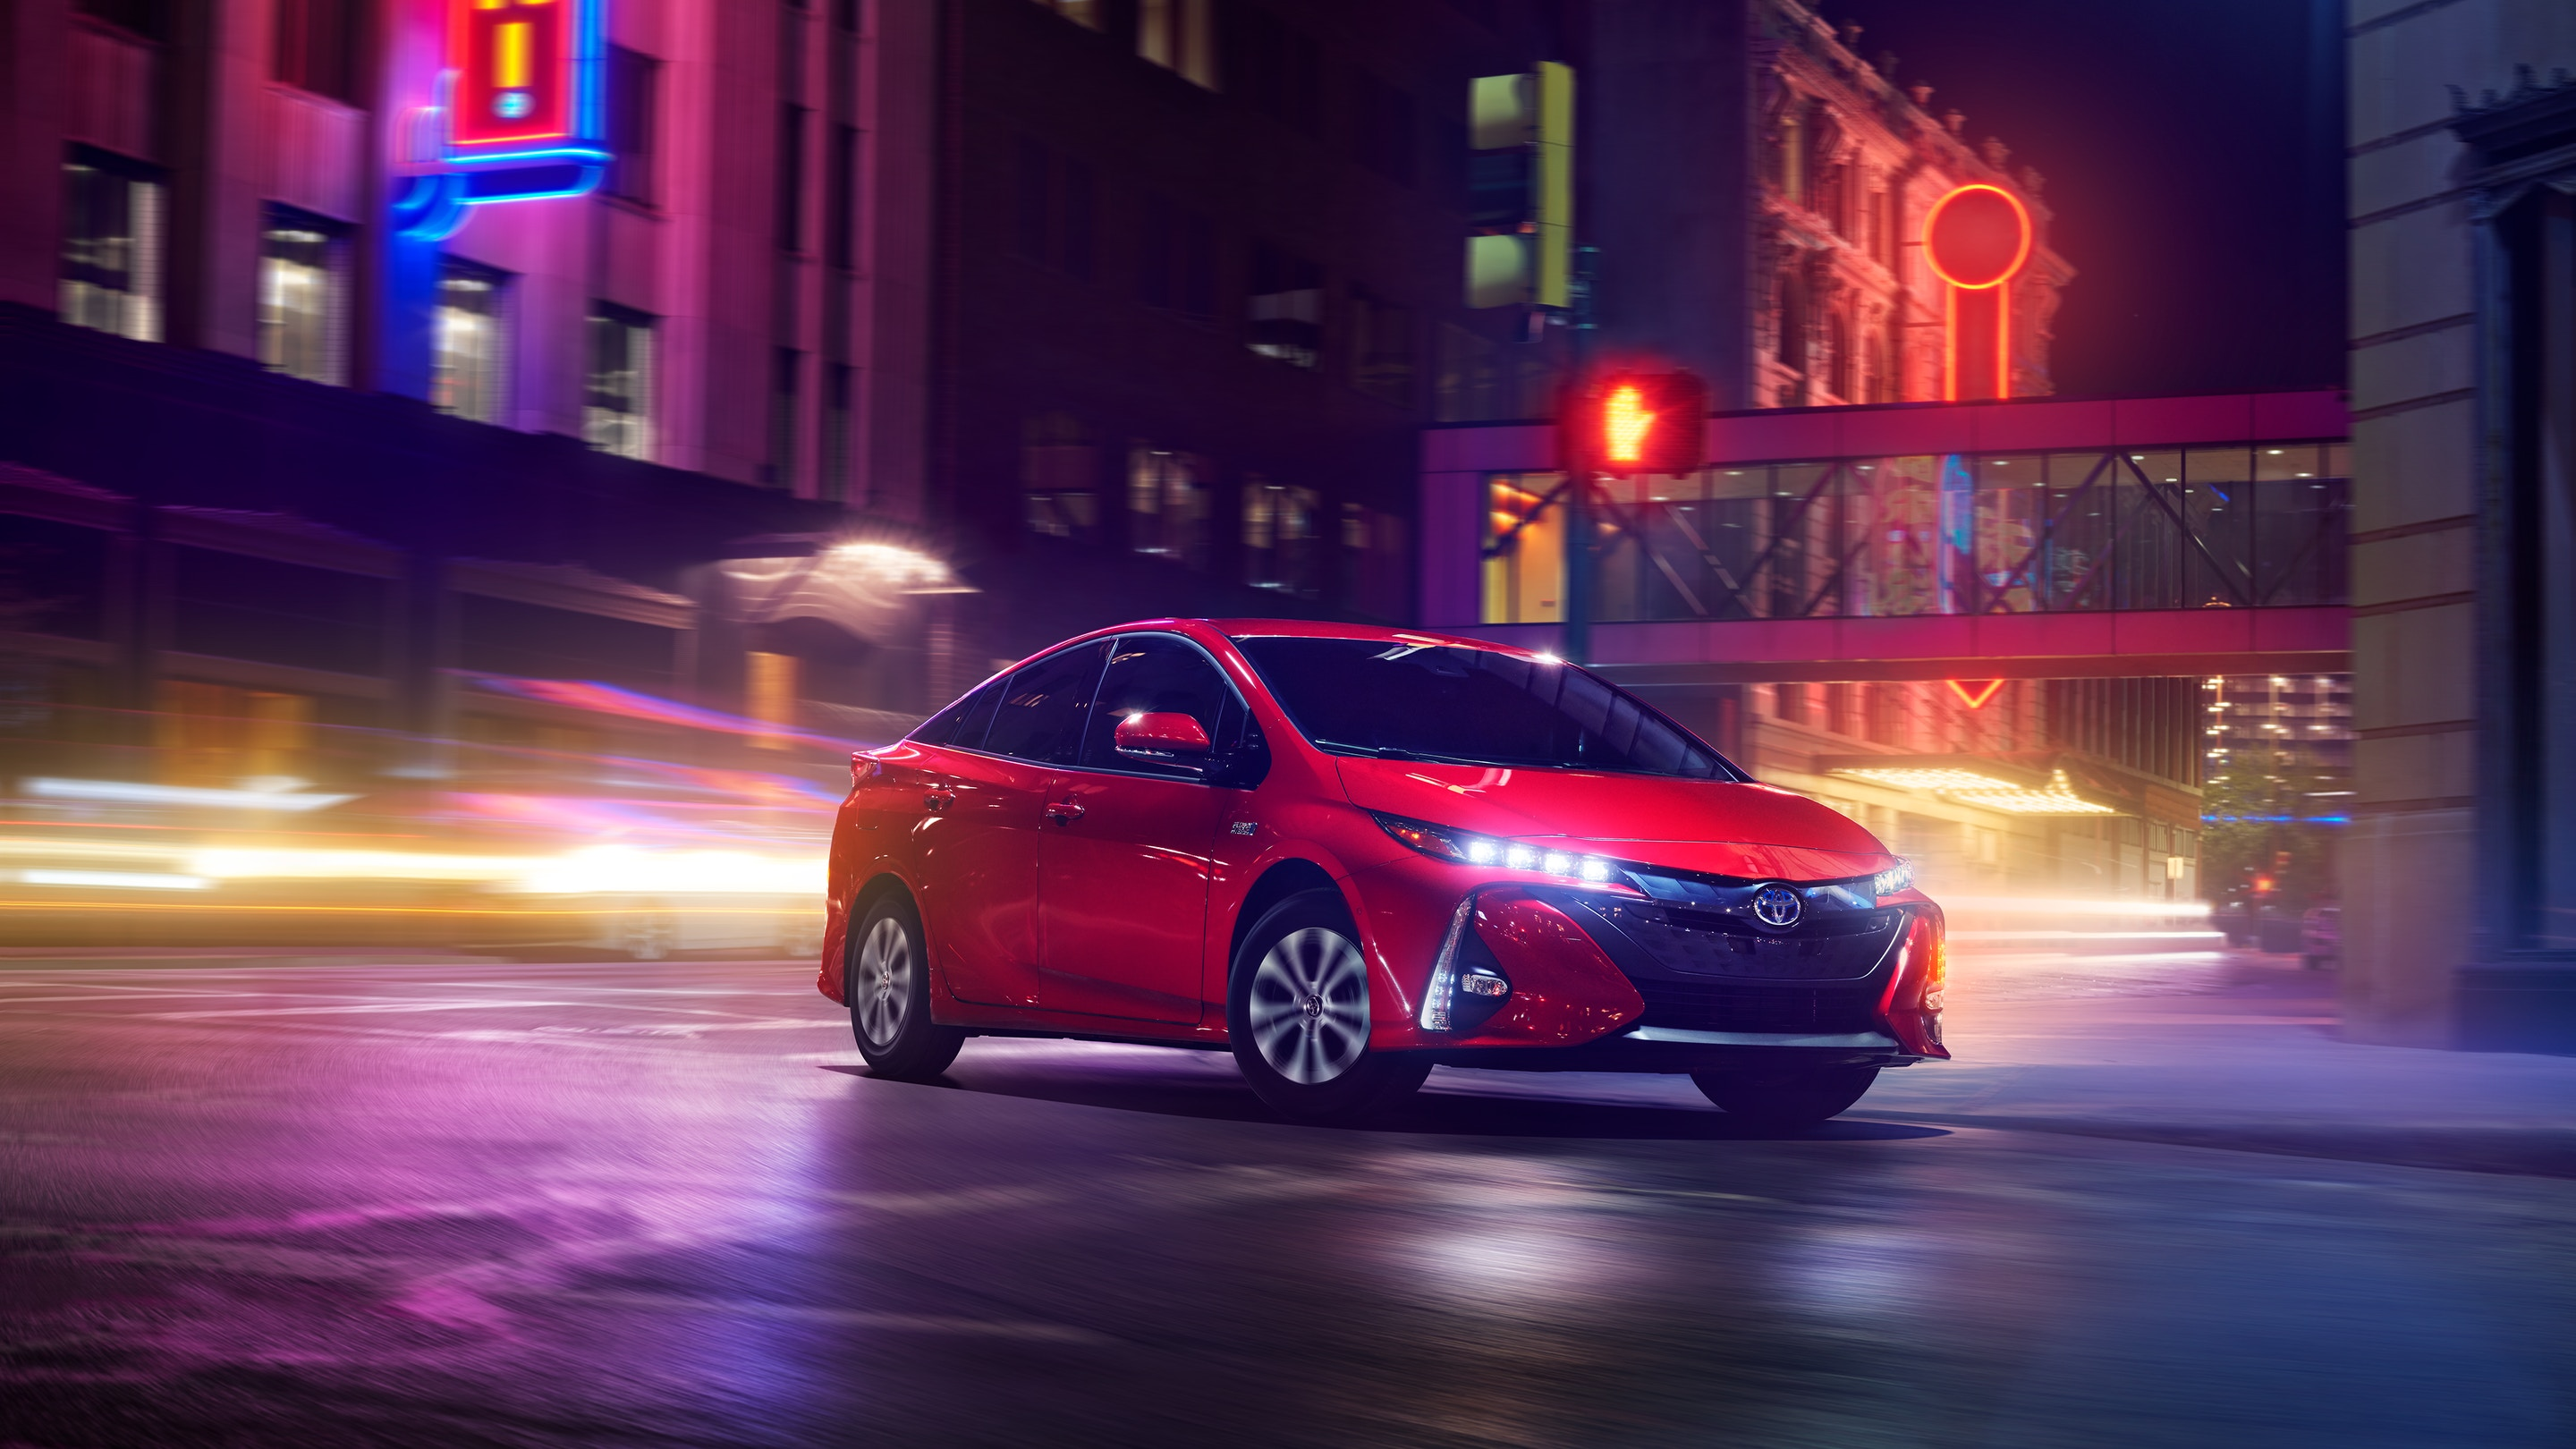 The new 2021 Toyota Corolla Hybrid in a colorful neon street setting.